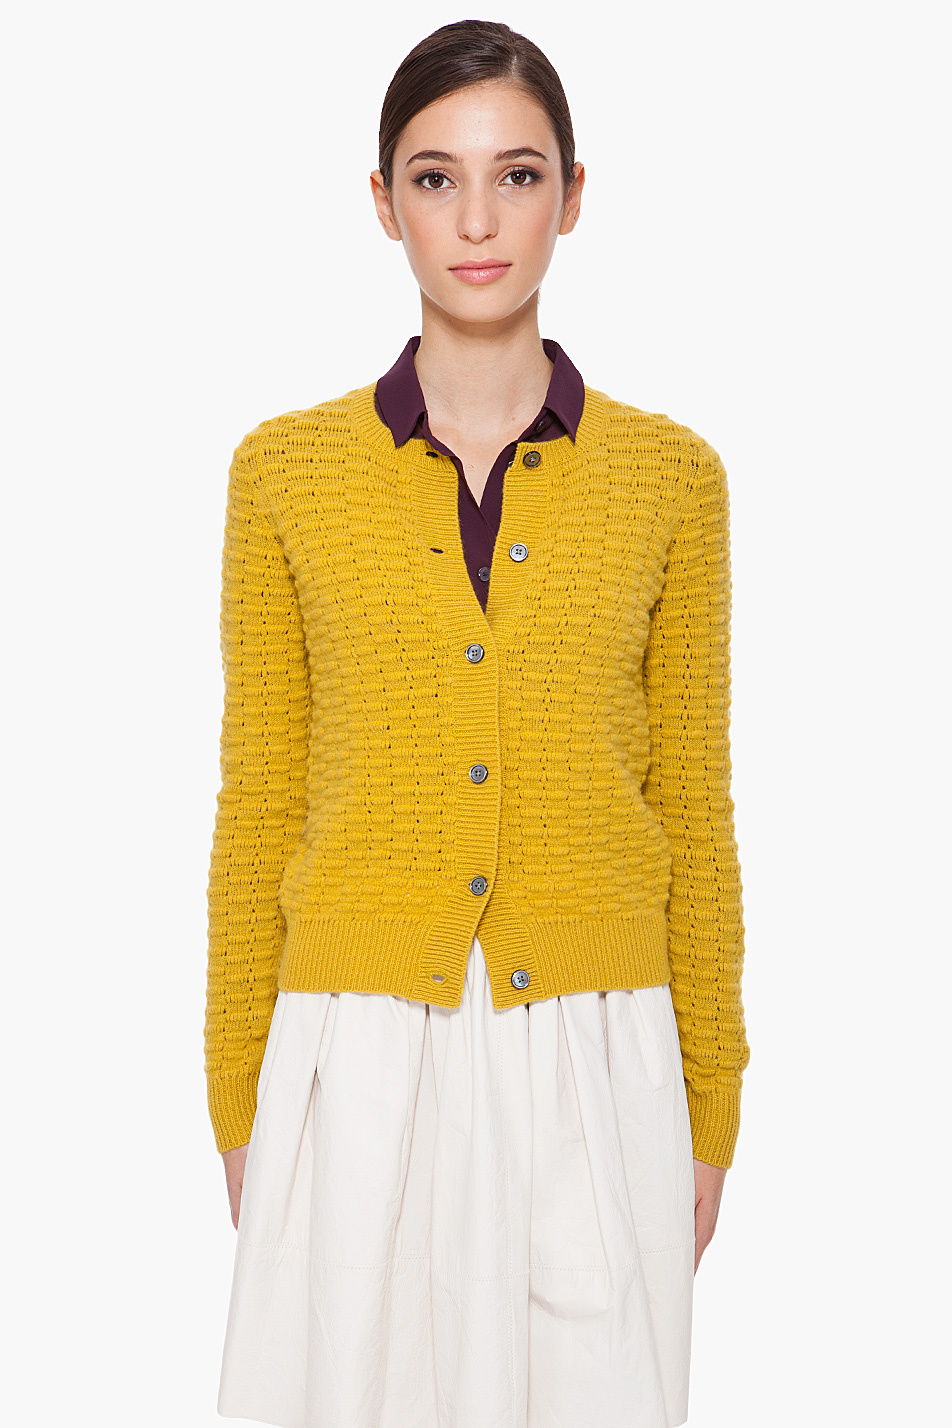 Marc jacobs Chartreuse Cashmere Cardigan in Yellow | Lyst